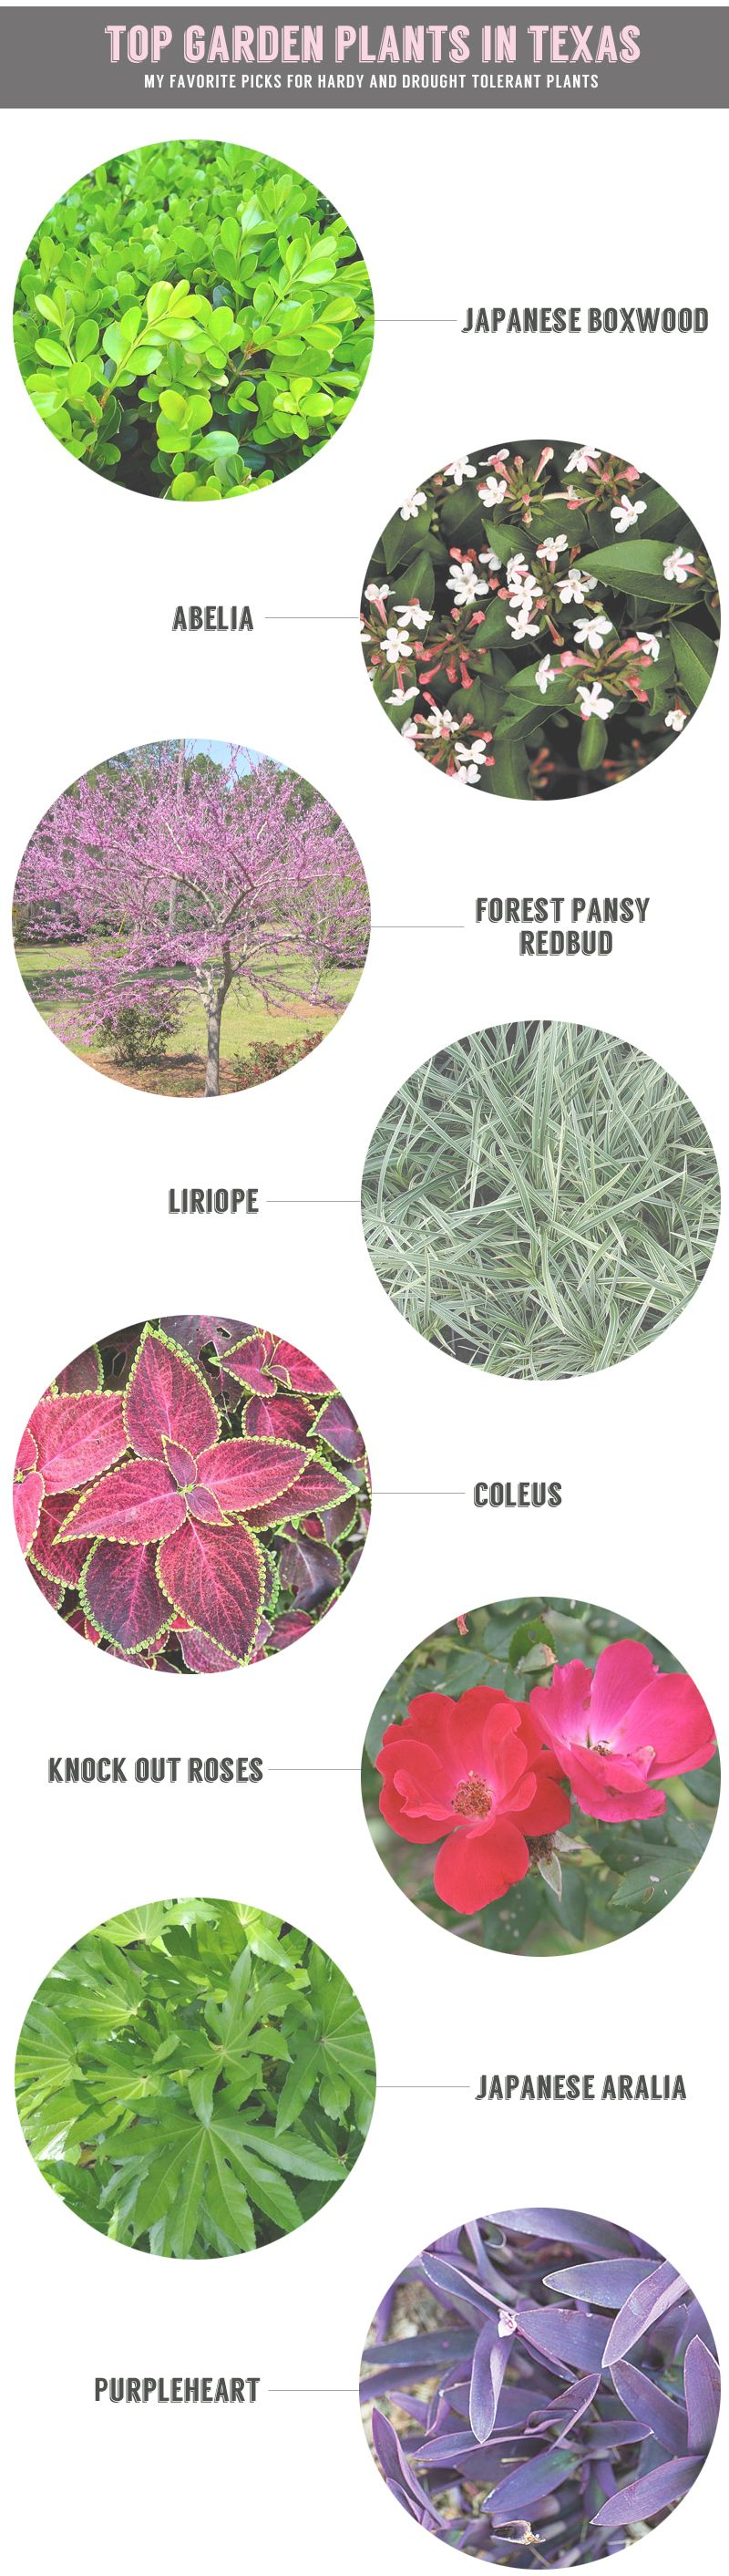 gardening in texas drought tolerant plants drought tolerant and